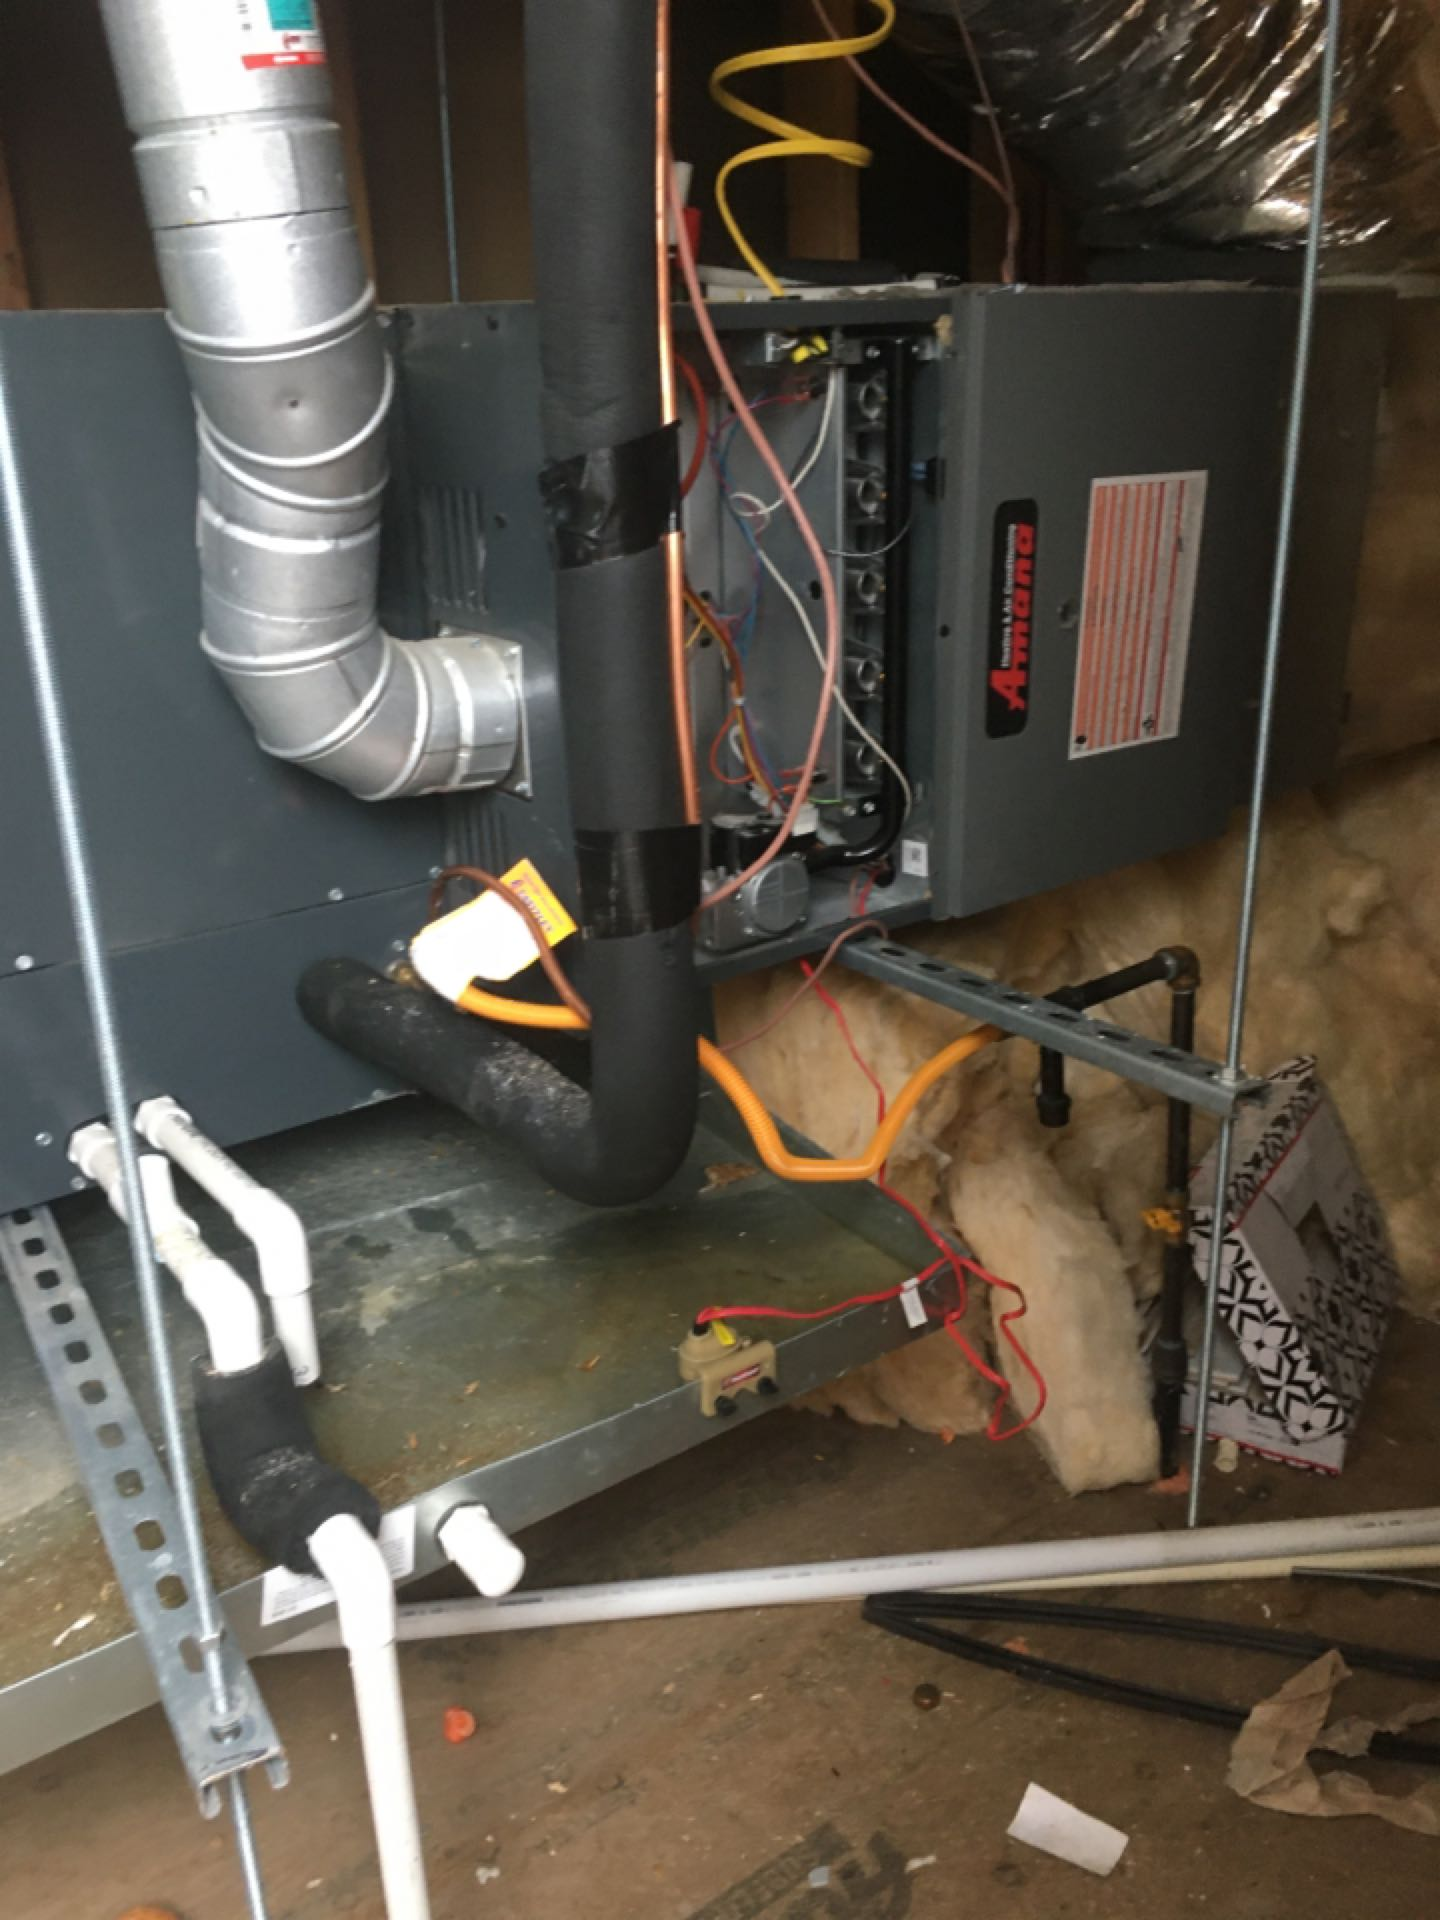 Dallas, TX - Here in cedar springs checking an Amana condenser and furnace out before inspection tomorrow.